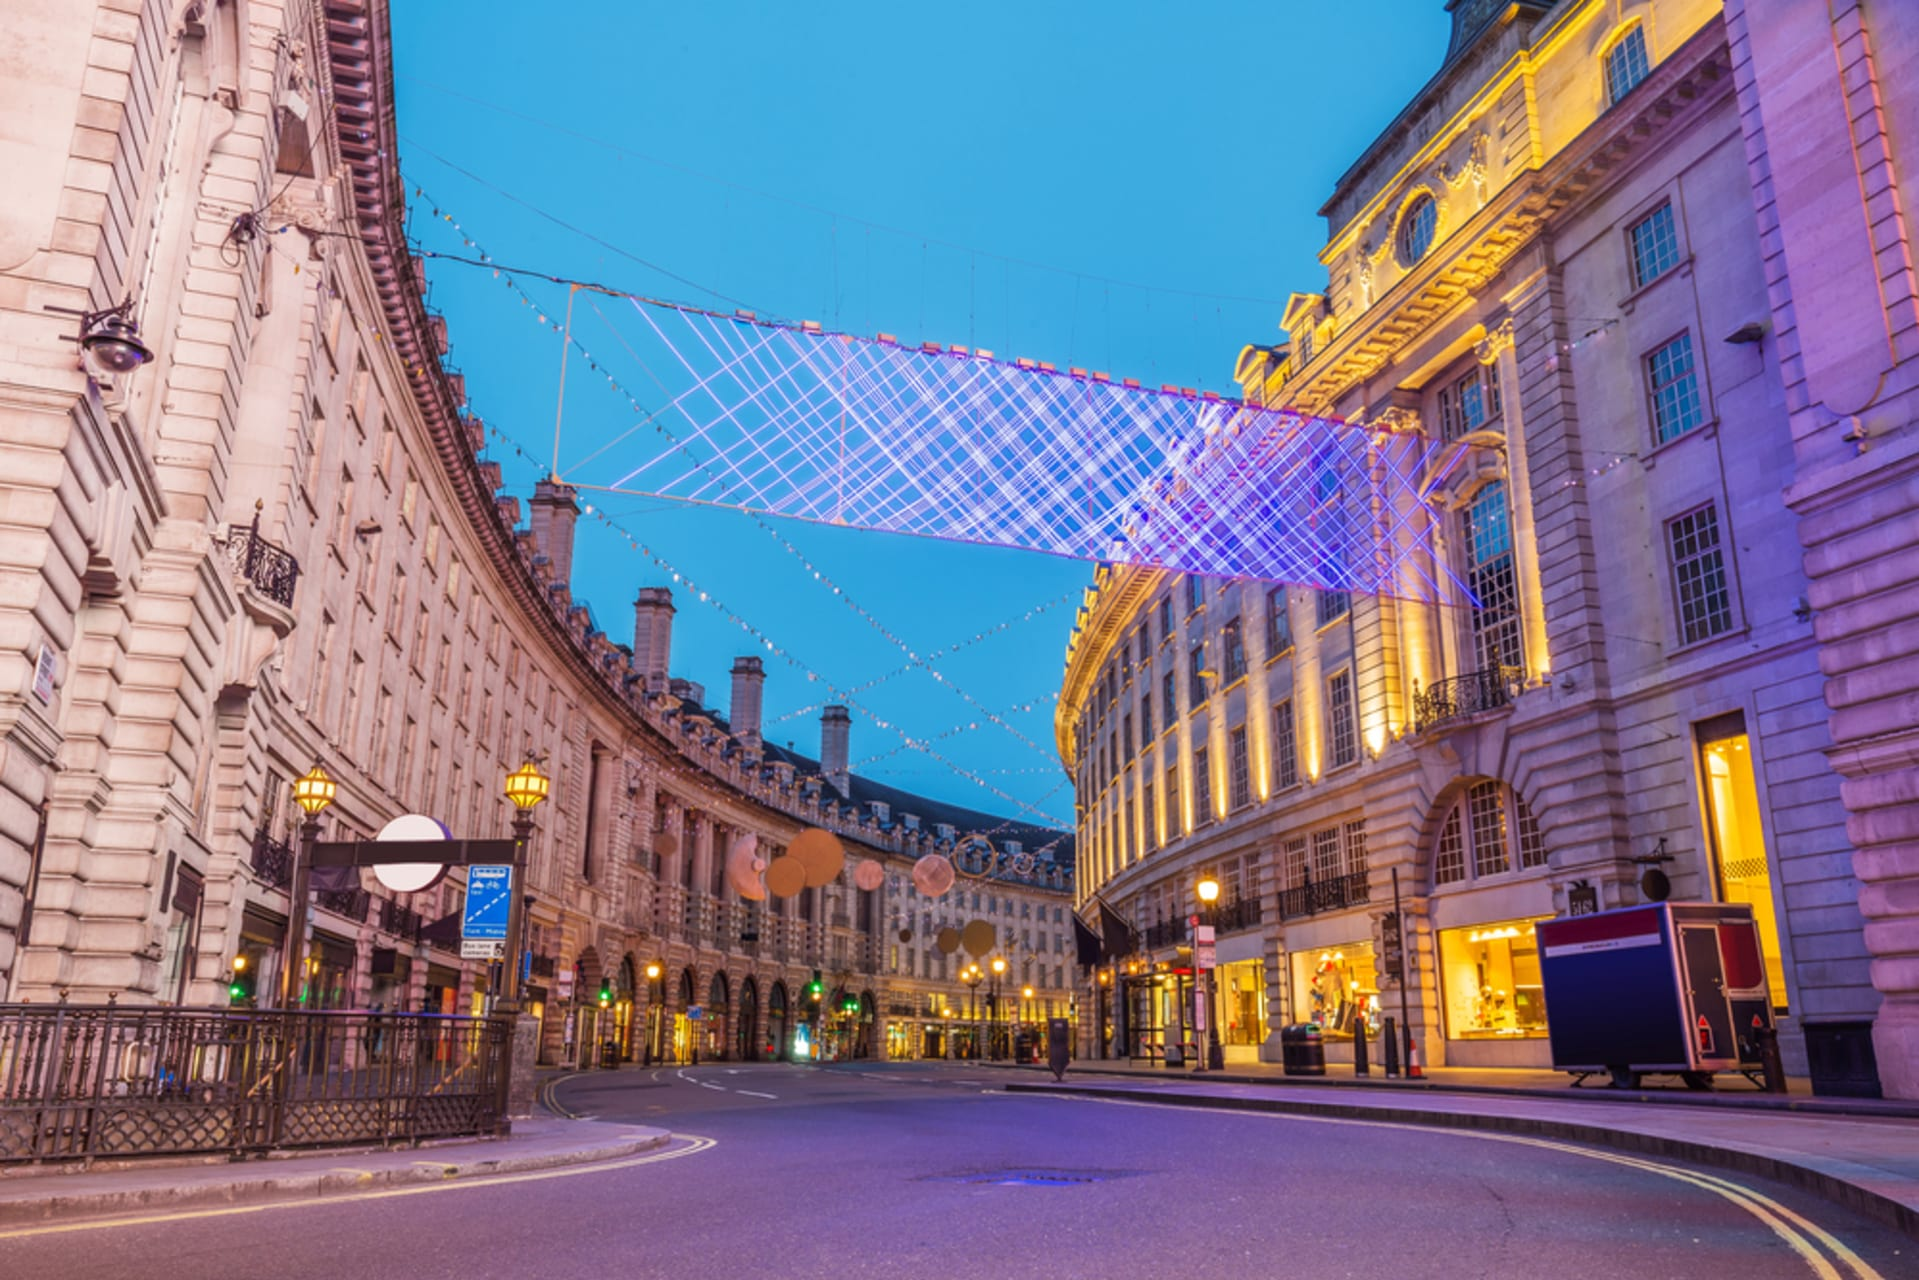 London - Bright Lights in the Big City - London's Chinatown, Leicester Square and Piccadilly